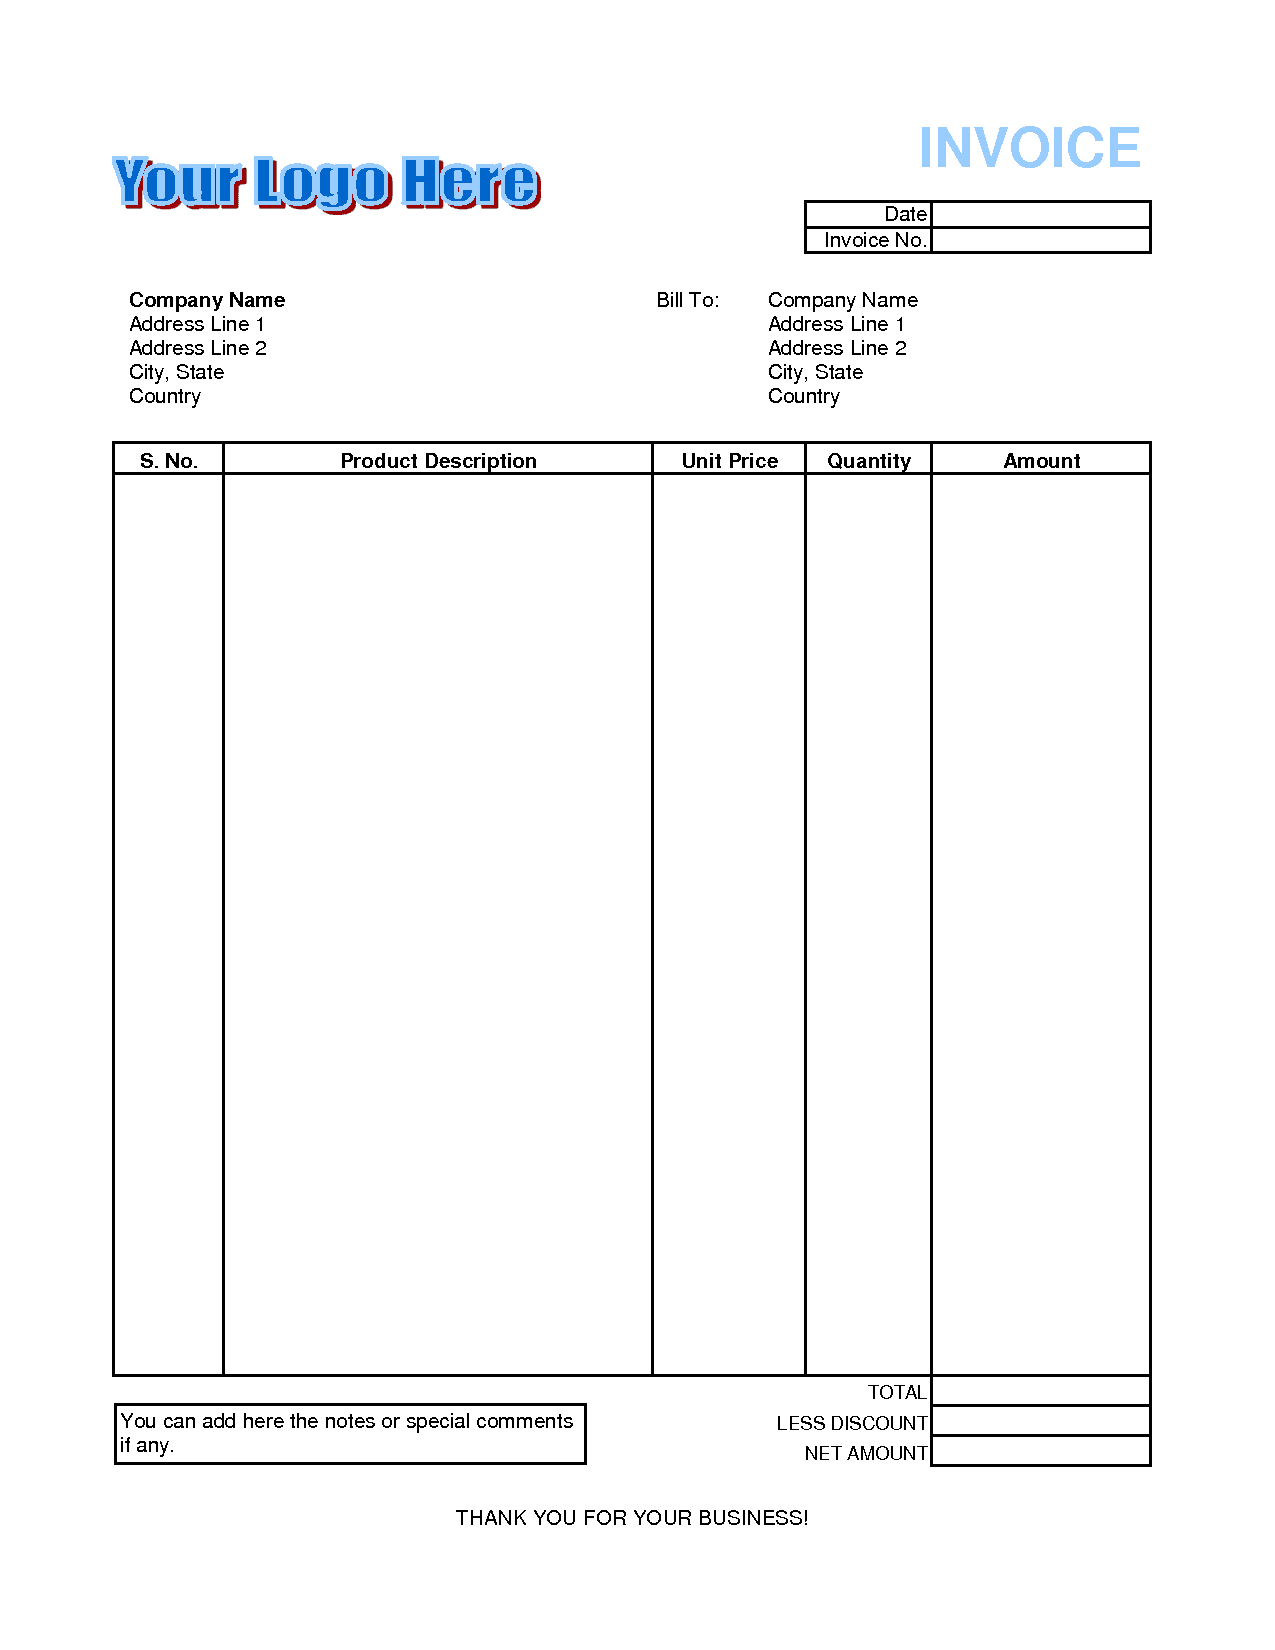 Free Invoices Invoice Excel Template Spreadsheet Templates for Busines Spreadsheet Templates for Busines Free Invoices